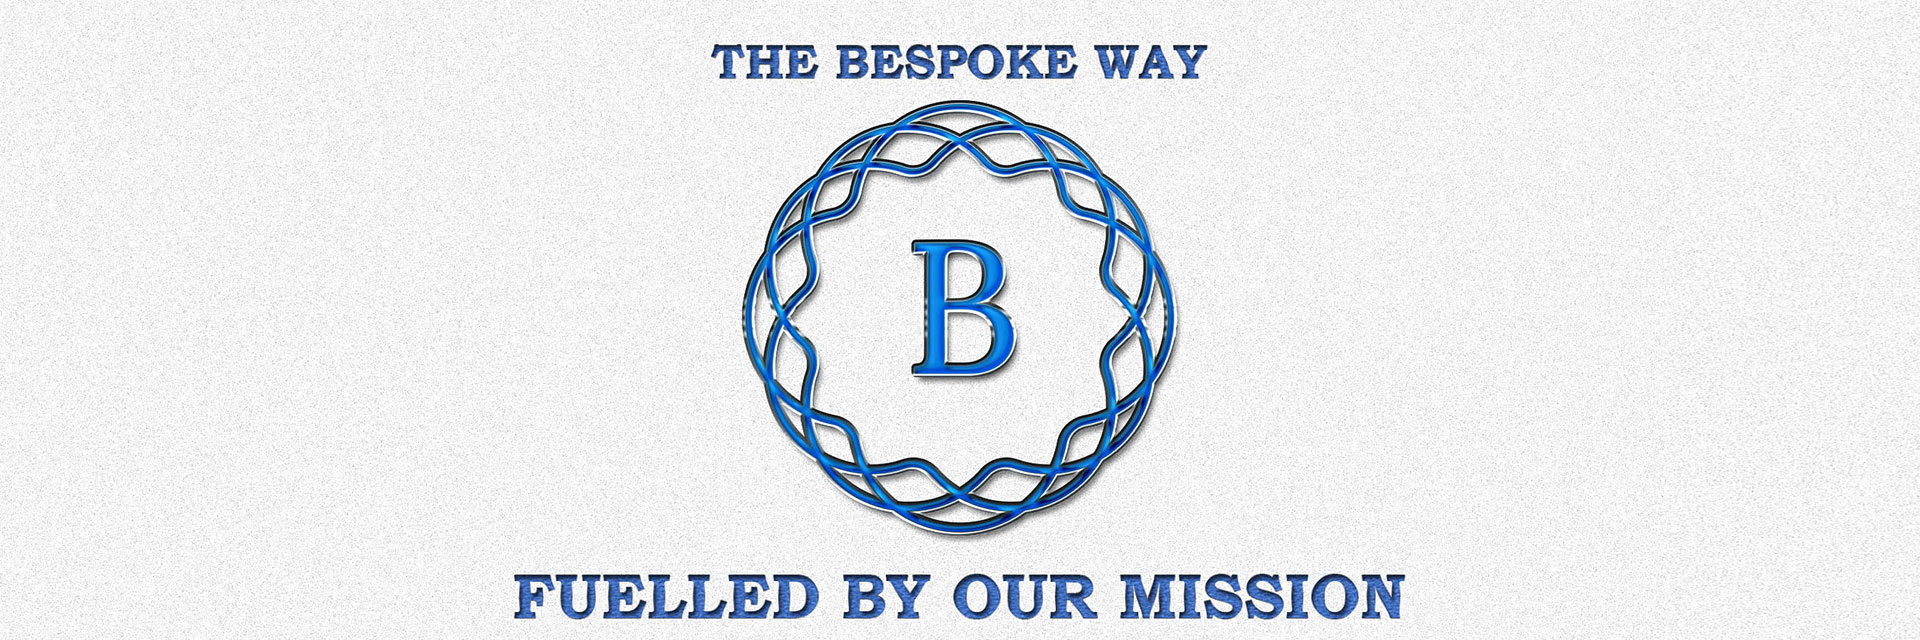 Bespoke - Hotel Revenue Management